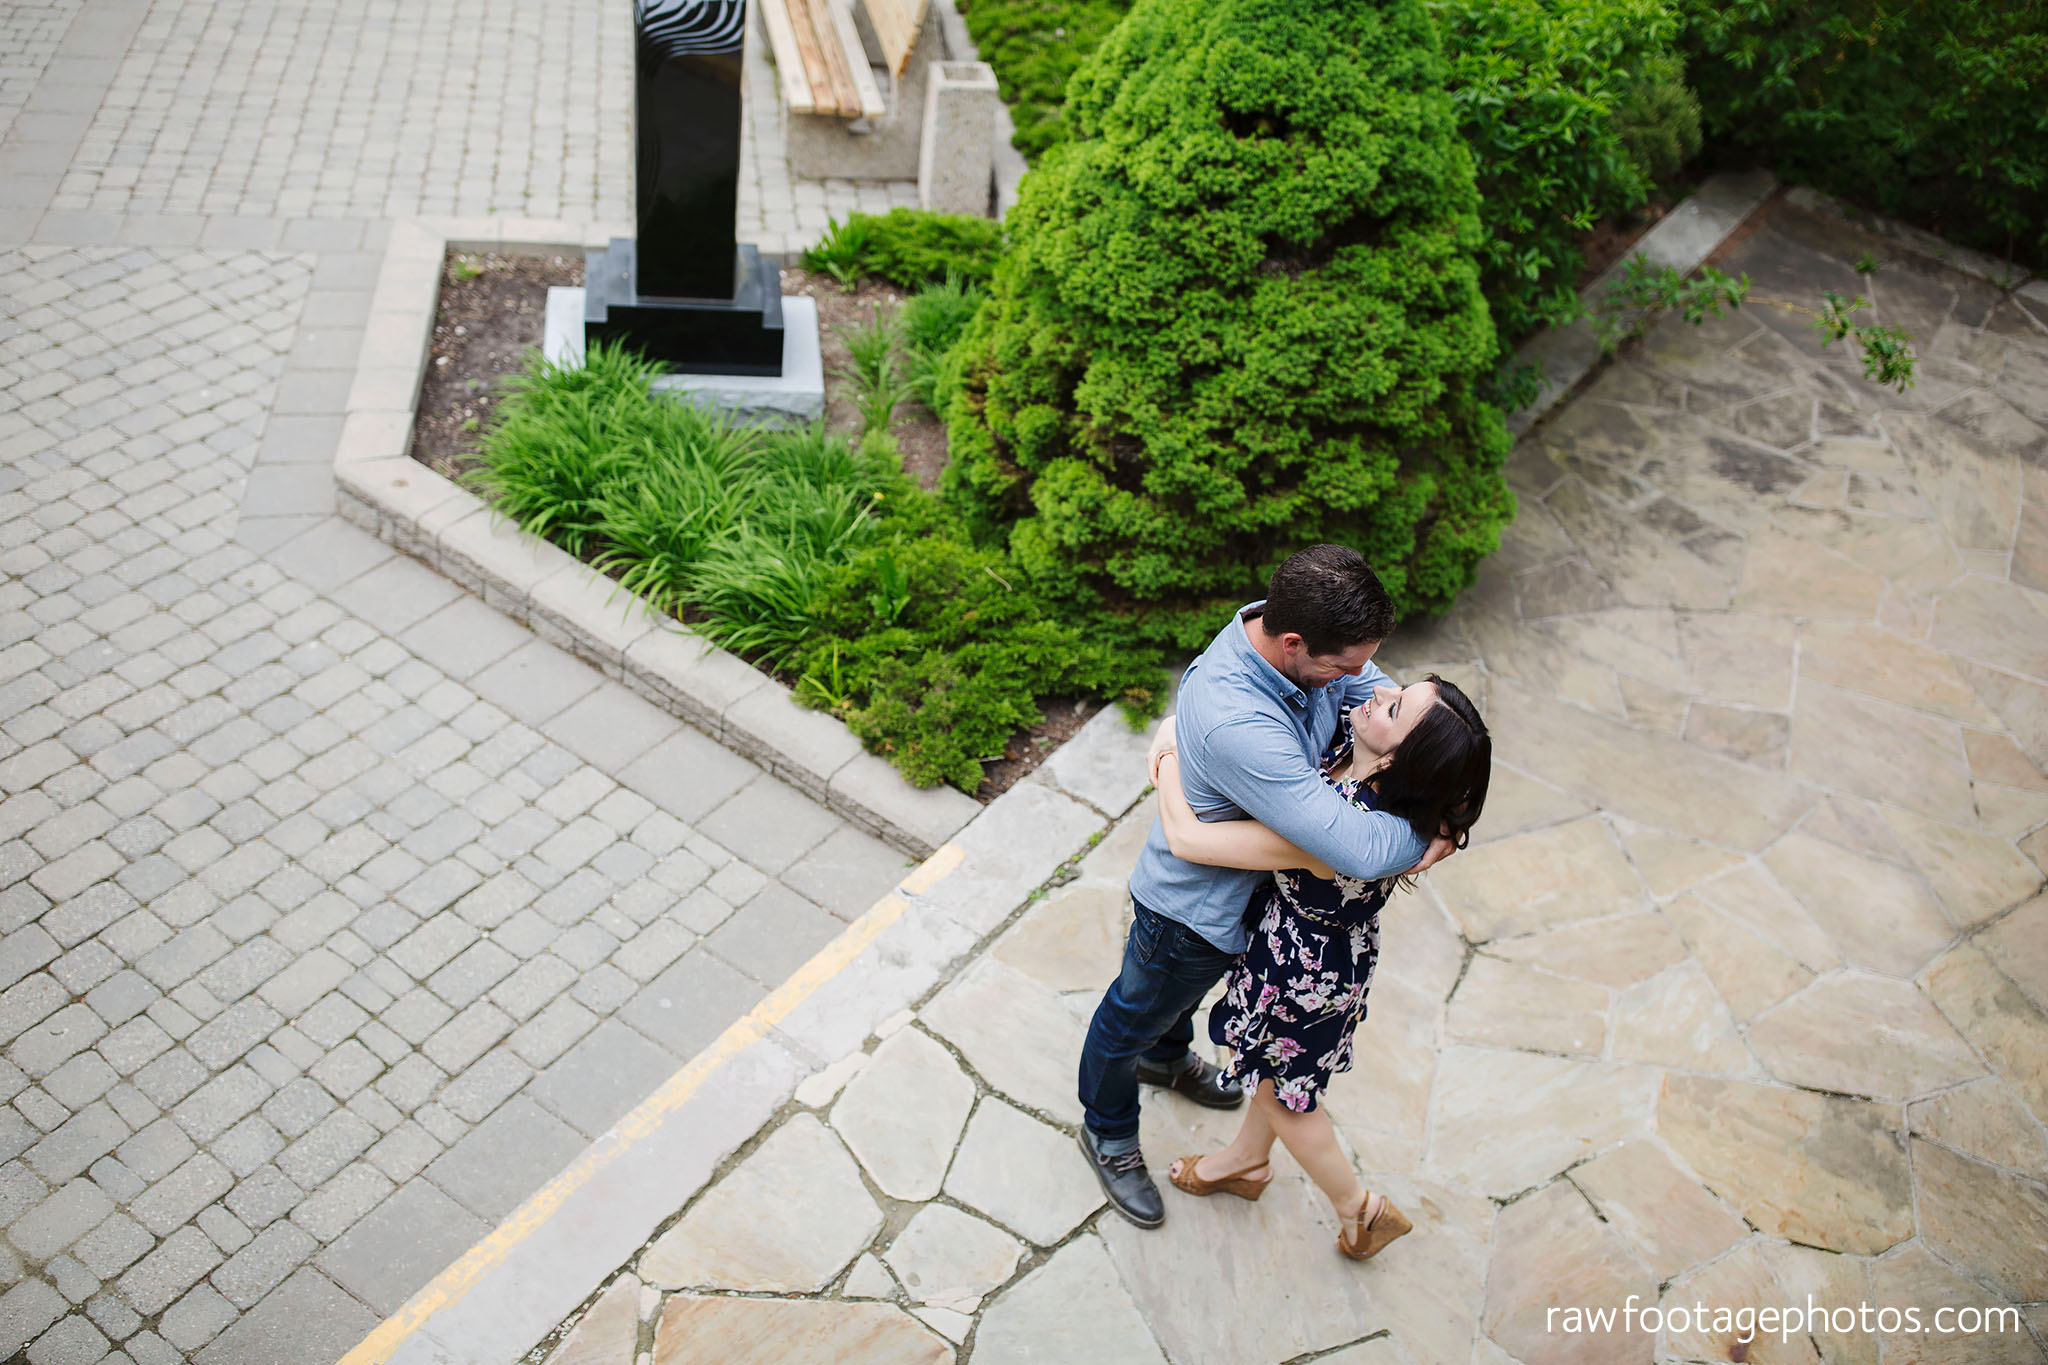 london_ontario_wedding_photographer-raw_footage_photography-engagement_session-campus_session-kings_college-uwo-spring_blooms002.jpg